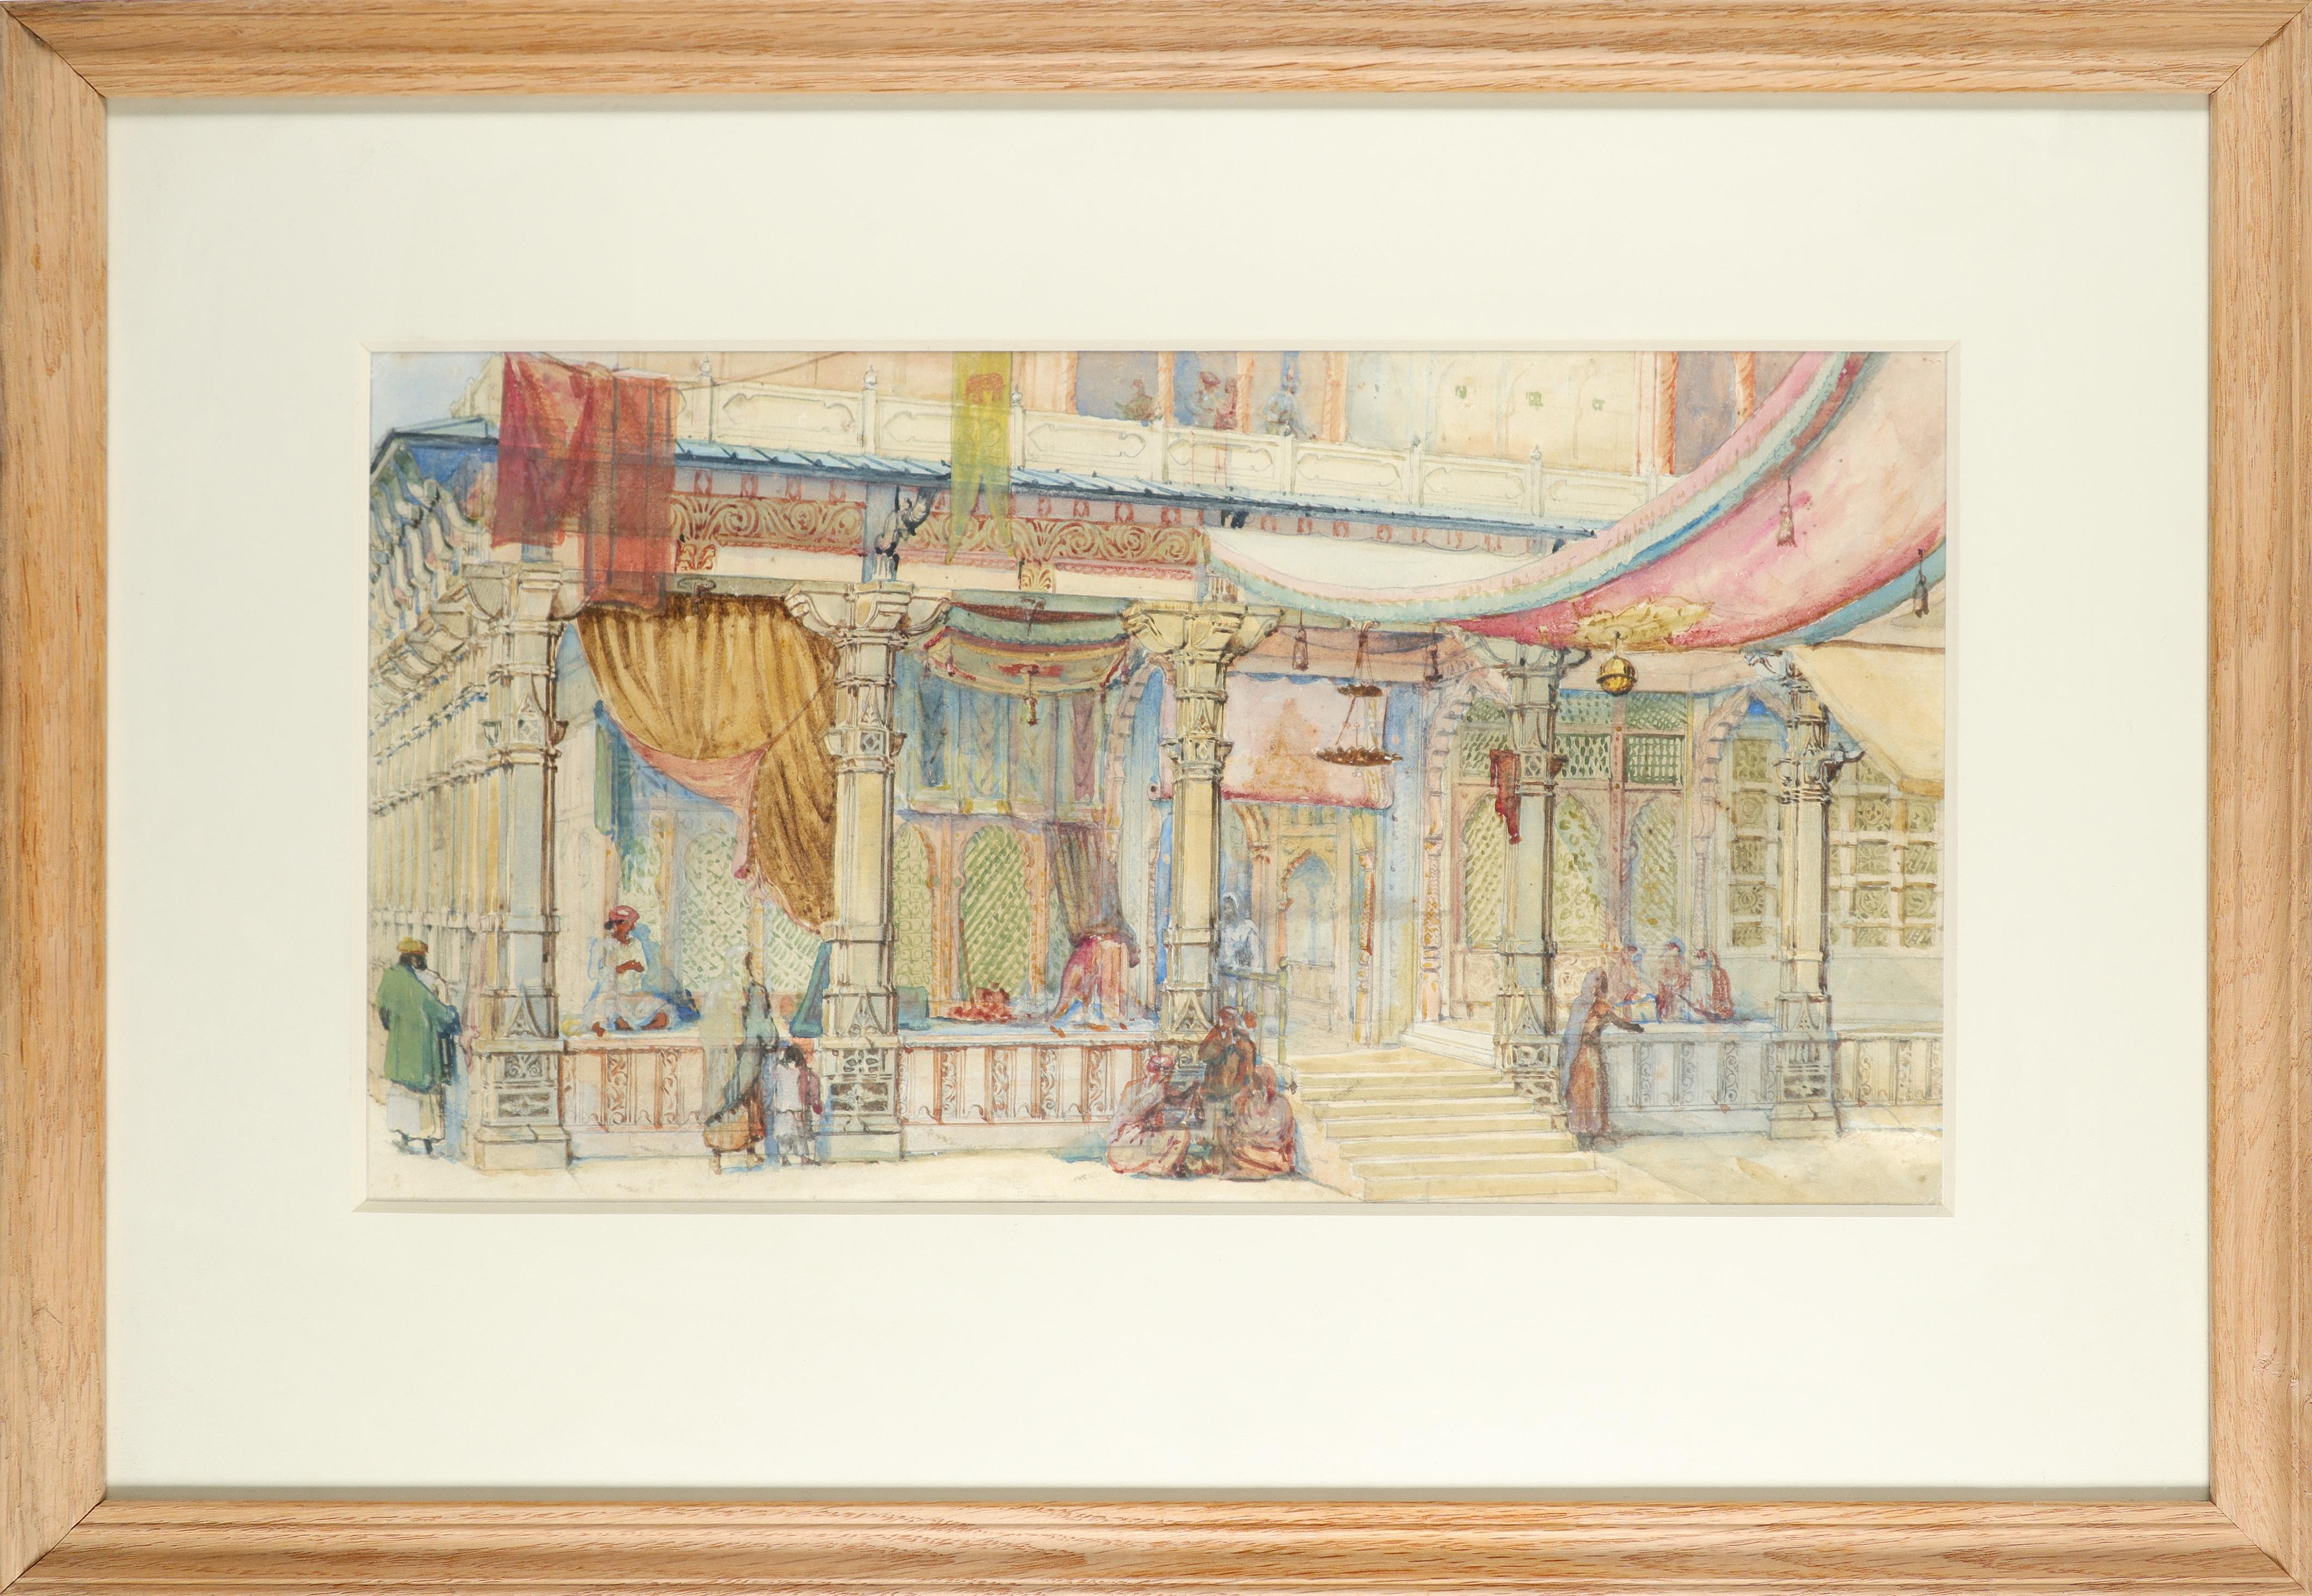 English School 19th Century Orientalist scene with figures outside a souk Pencil and watercolour - Image 2 of 3